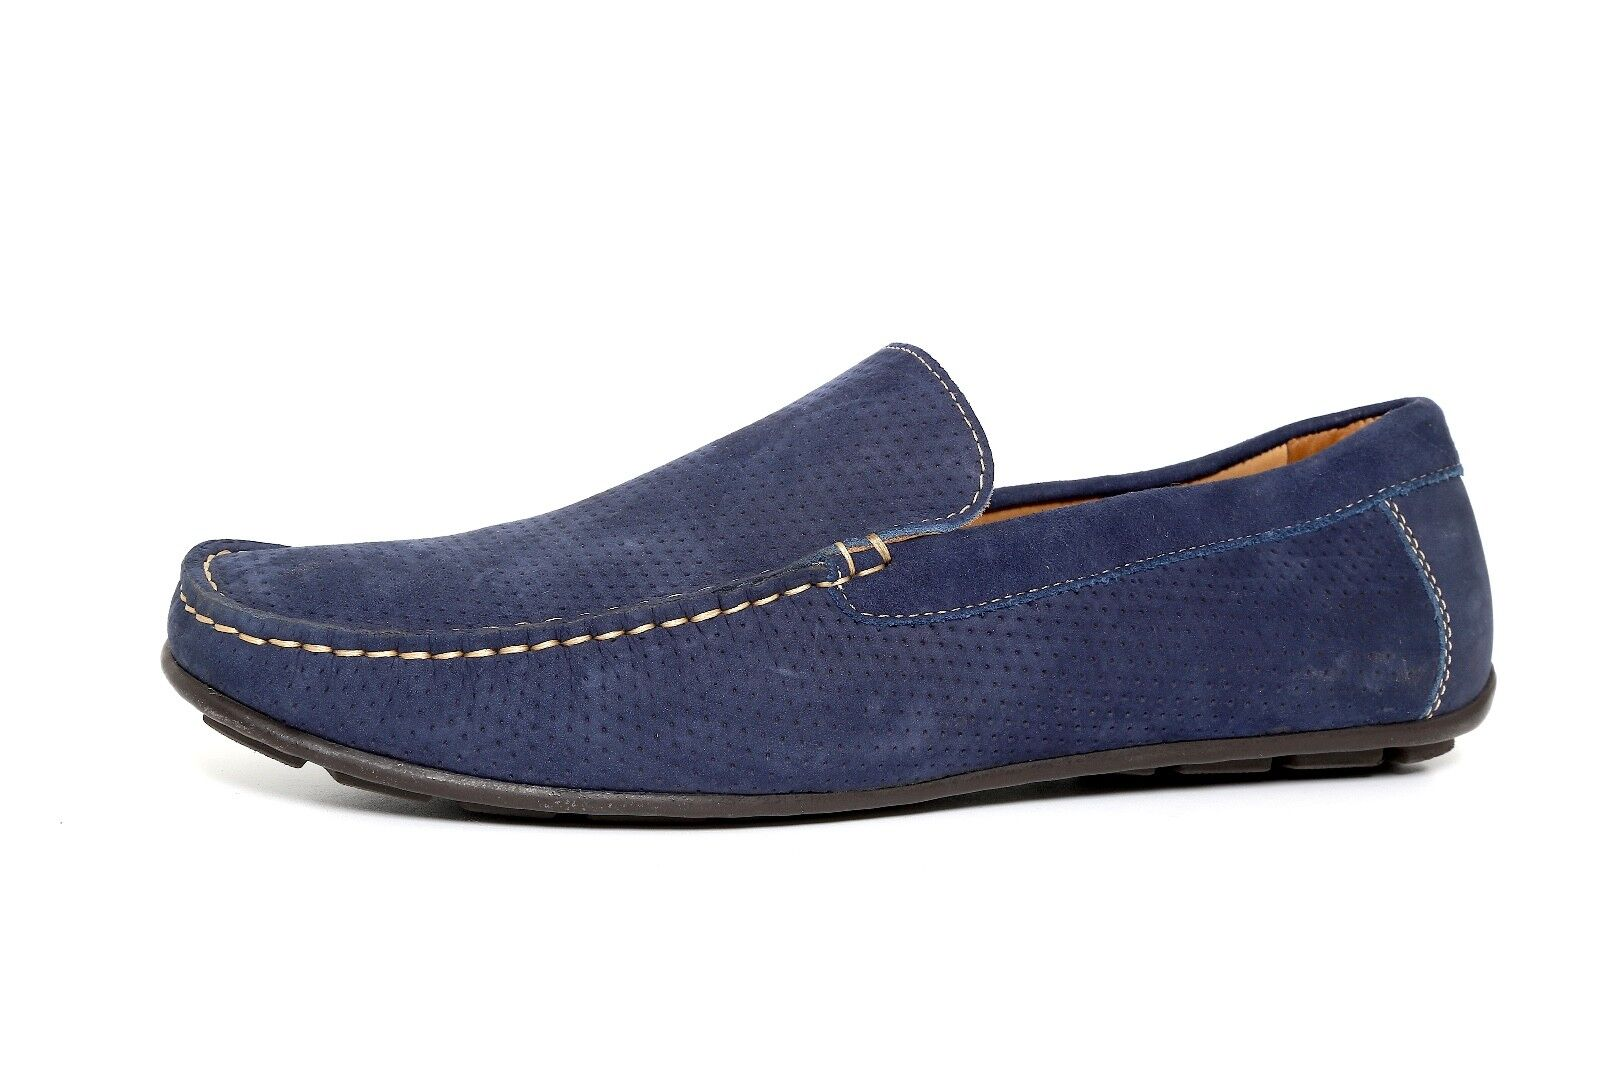 1901 bluee Leather Men Perforated Loafer Size 12M 1178